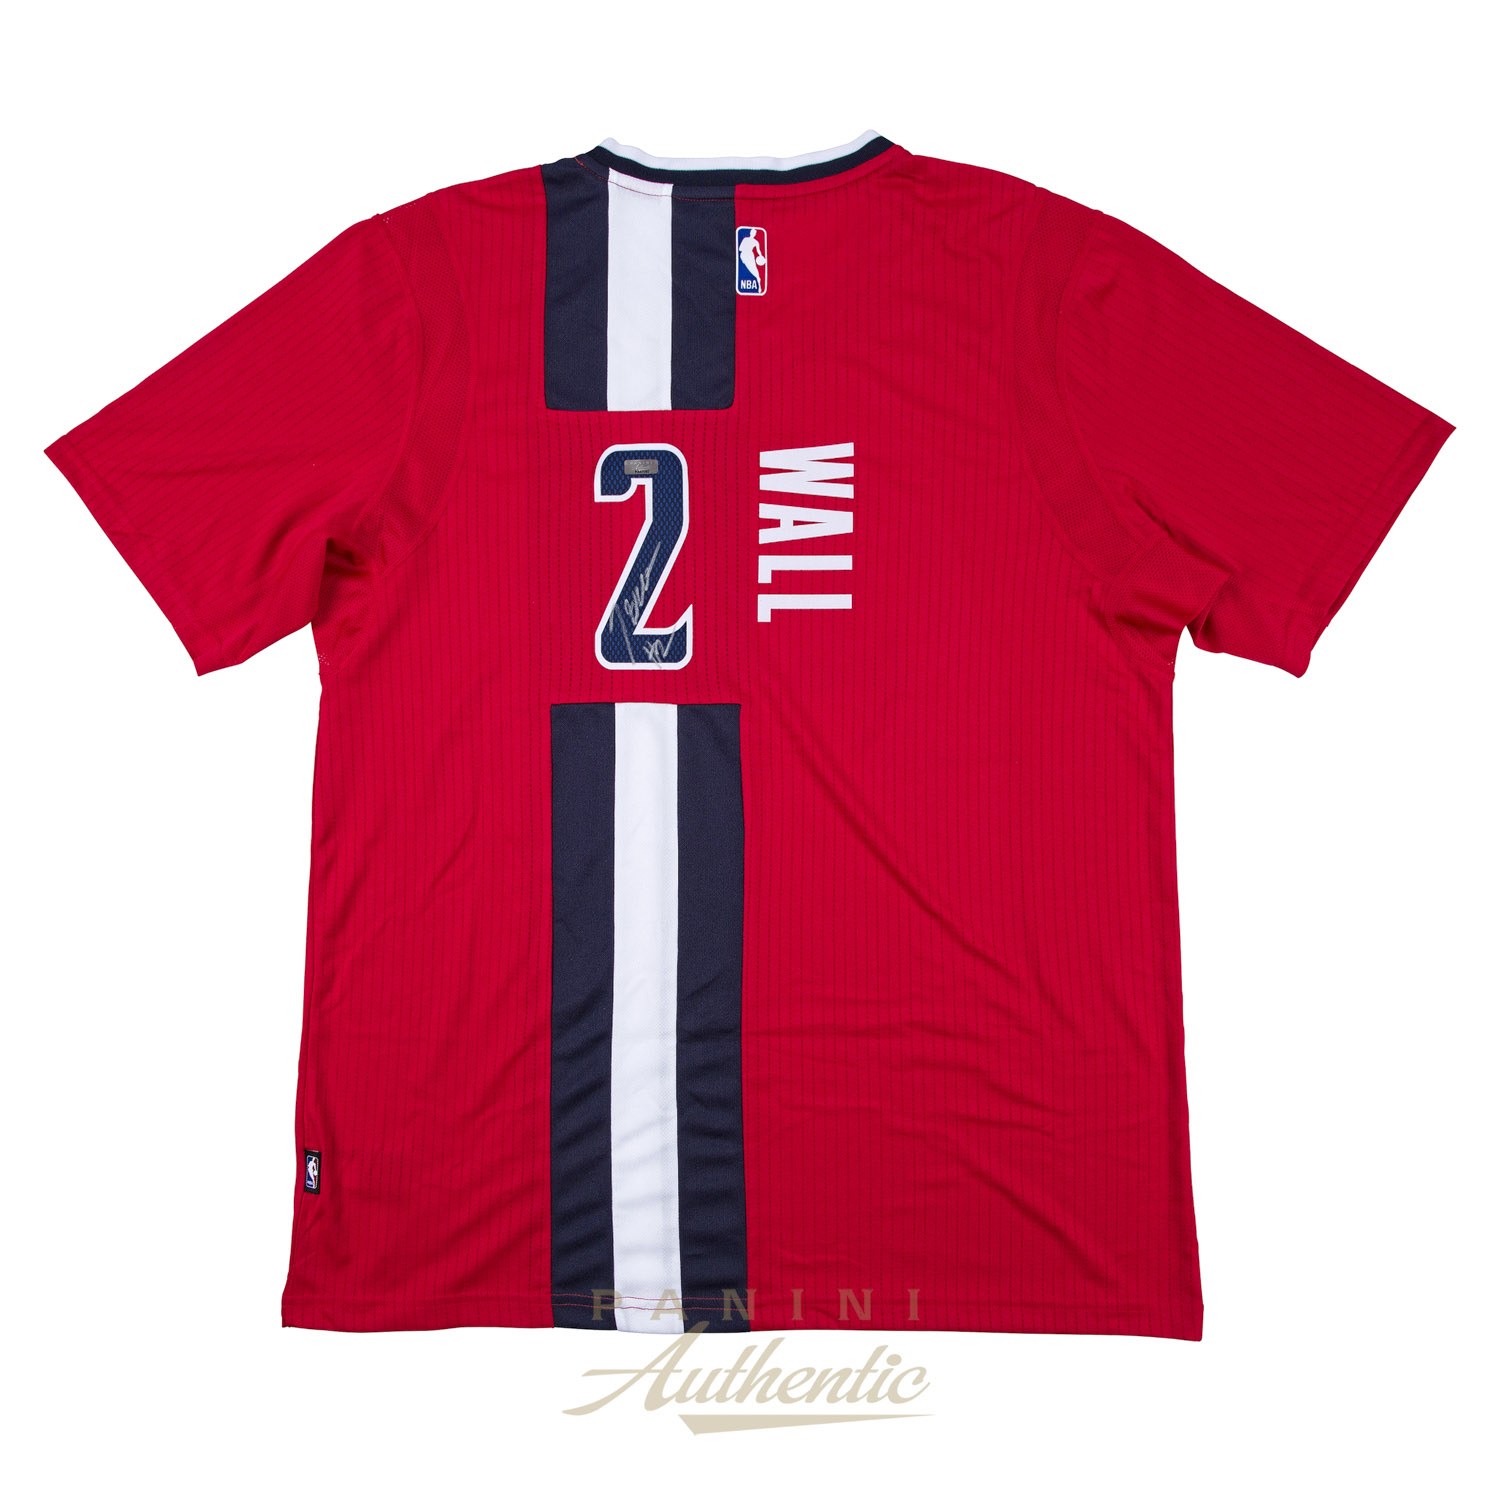 low priced 7299a a17ac John Wall Autographed Short Sleeve Red Wizards Swingman ...